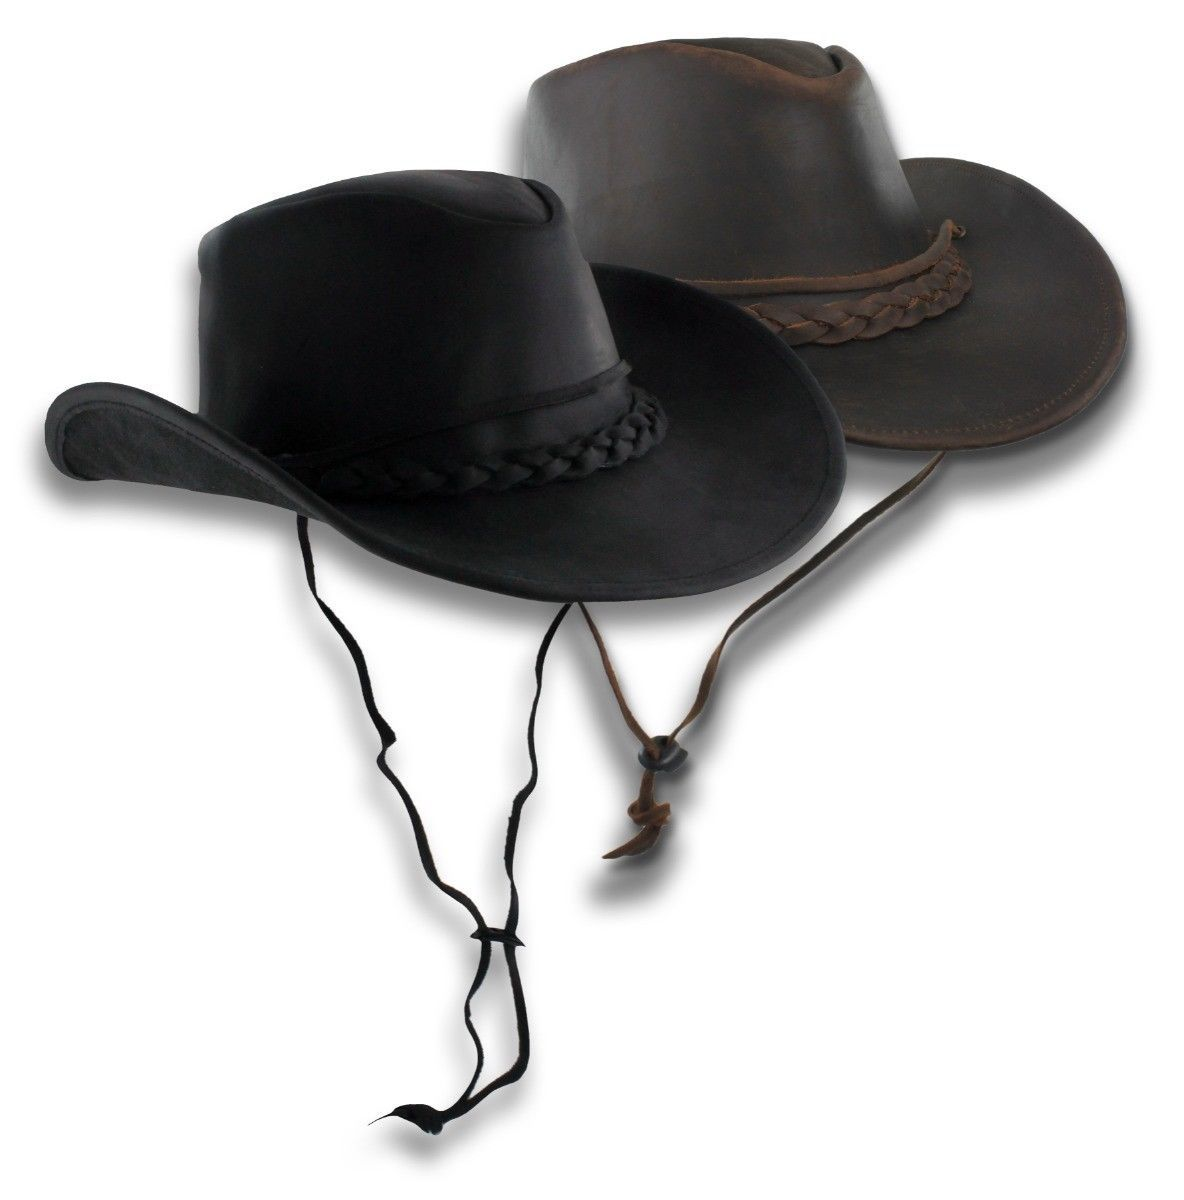 e43f8d18f Distressed Brown Leather Outback Hat Aussie Western Cowboy Wide Brim ...